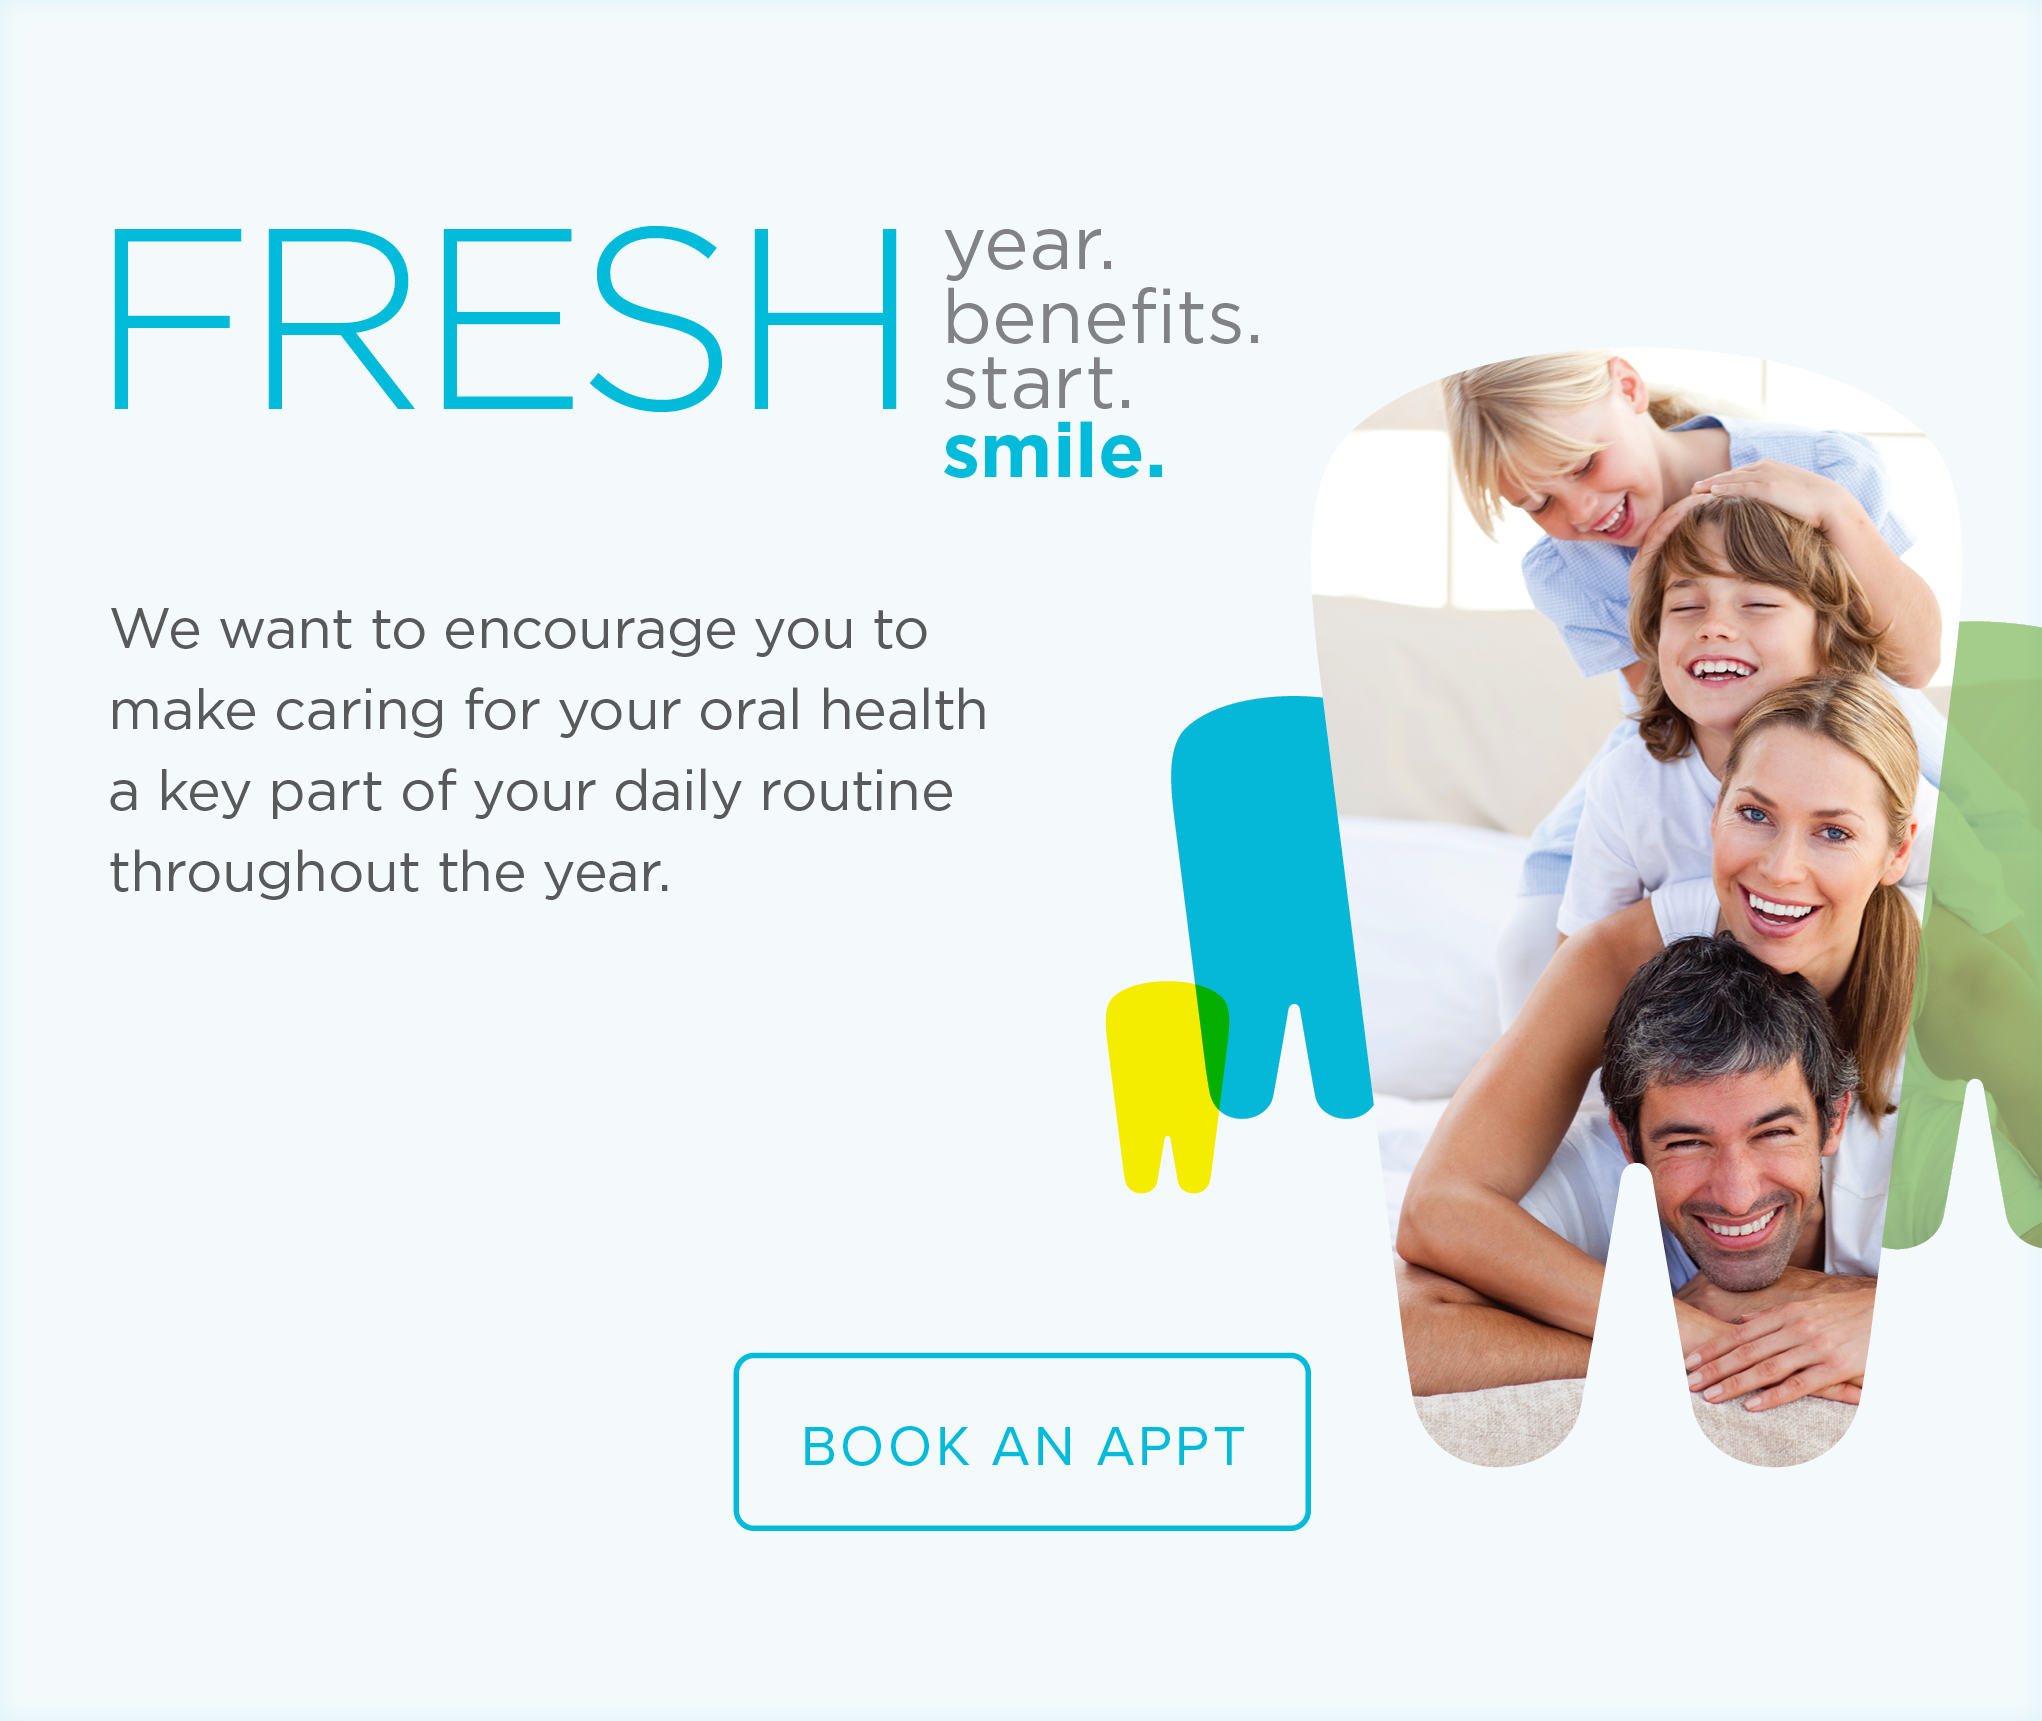 Ranch Plaza Dental Group - Make the Most of Your Benefits